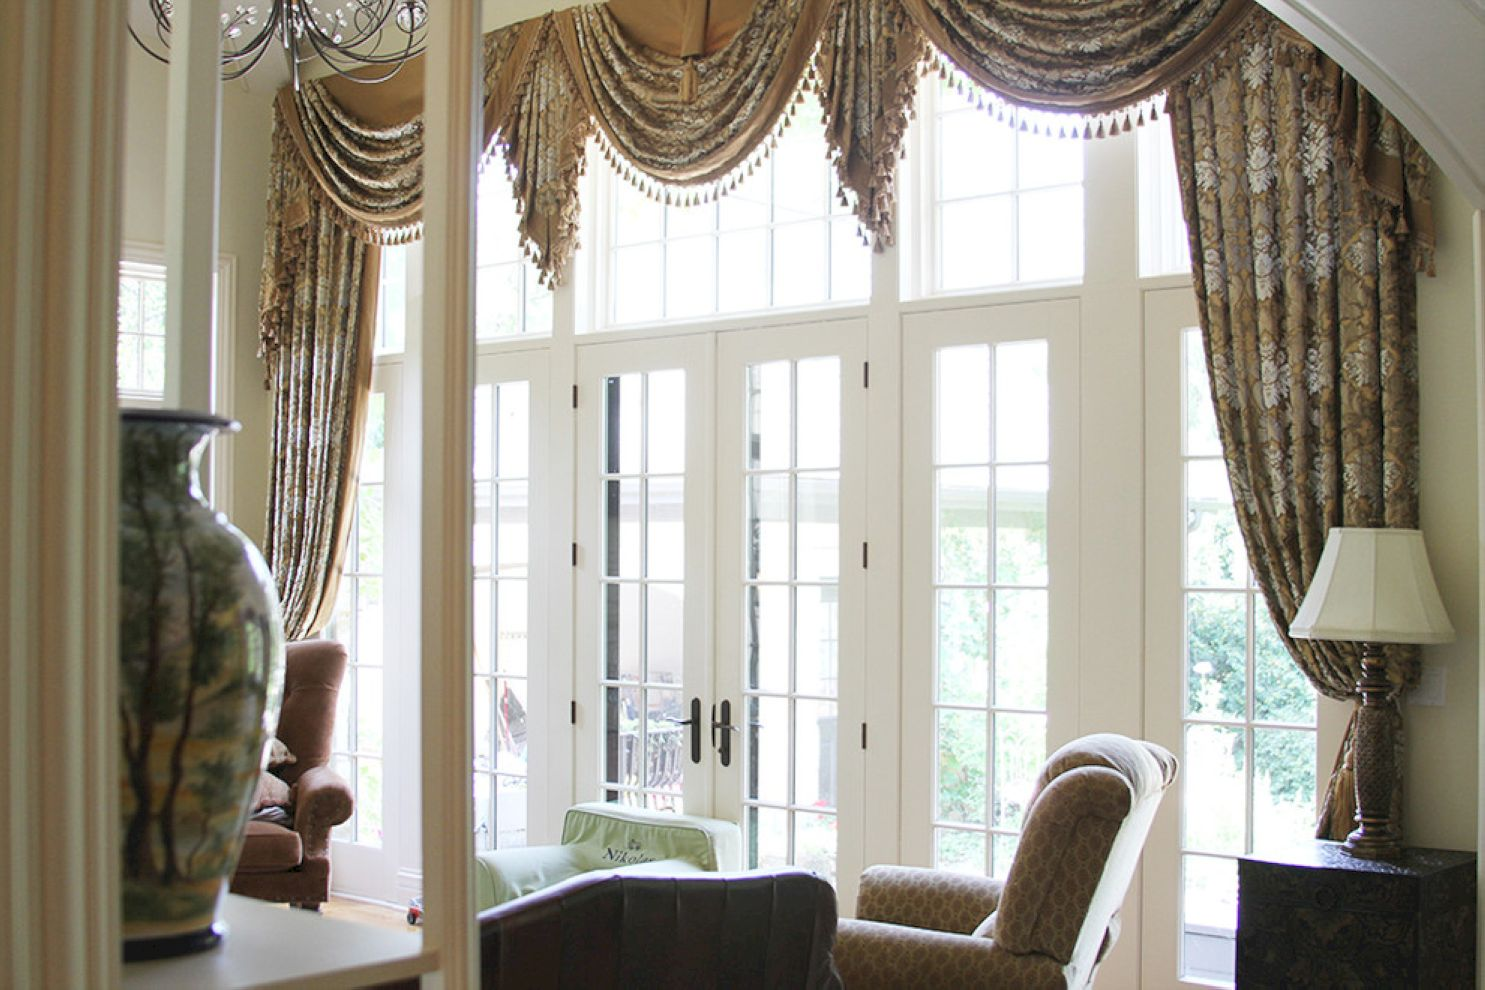 Top 5 Window Treatment Tips for an Outstanding Focal Point